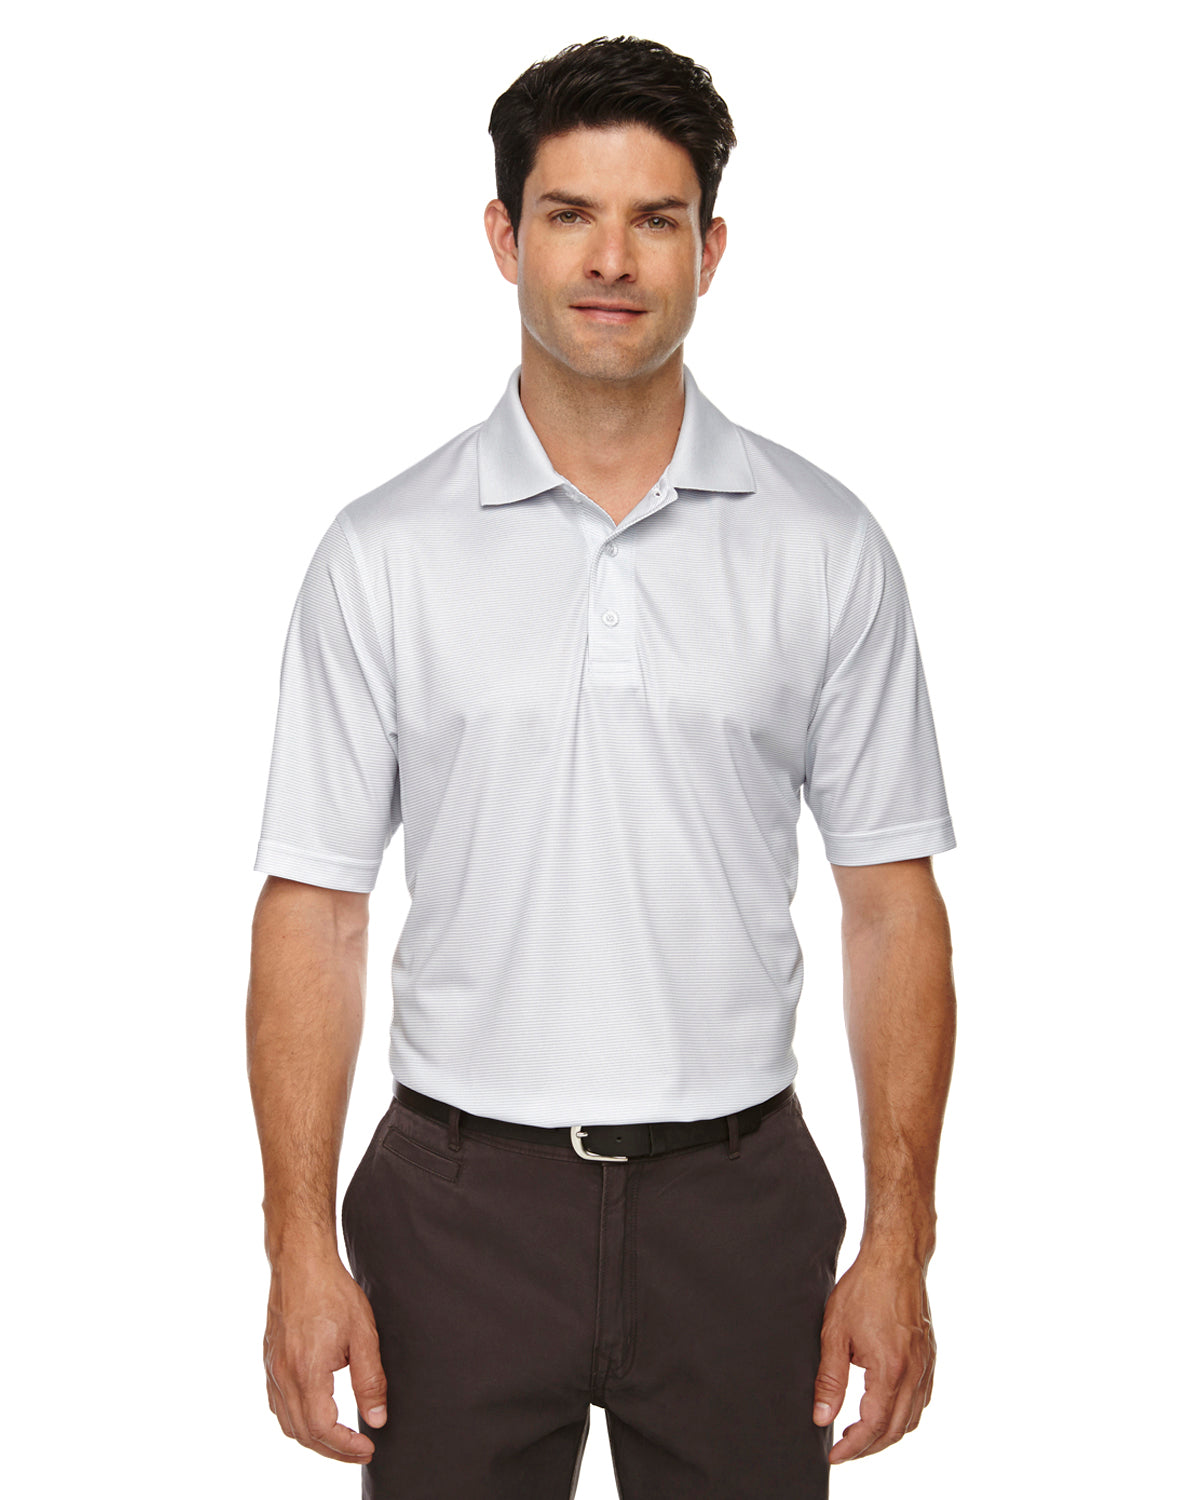 Rainwater's Mini Stripe Polo in Silver-White - Rainwater's Men's Clothing and Tuxedo Rental